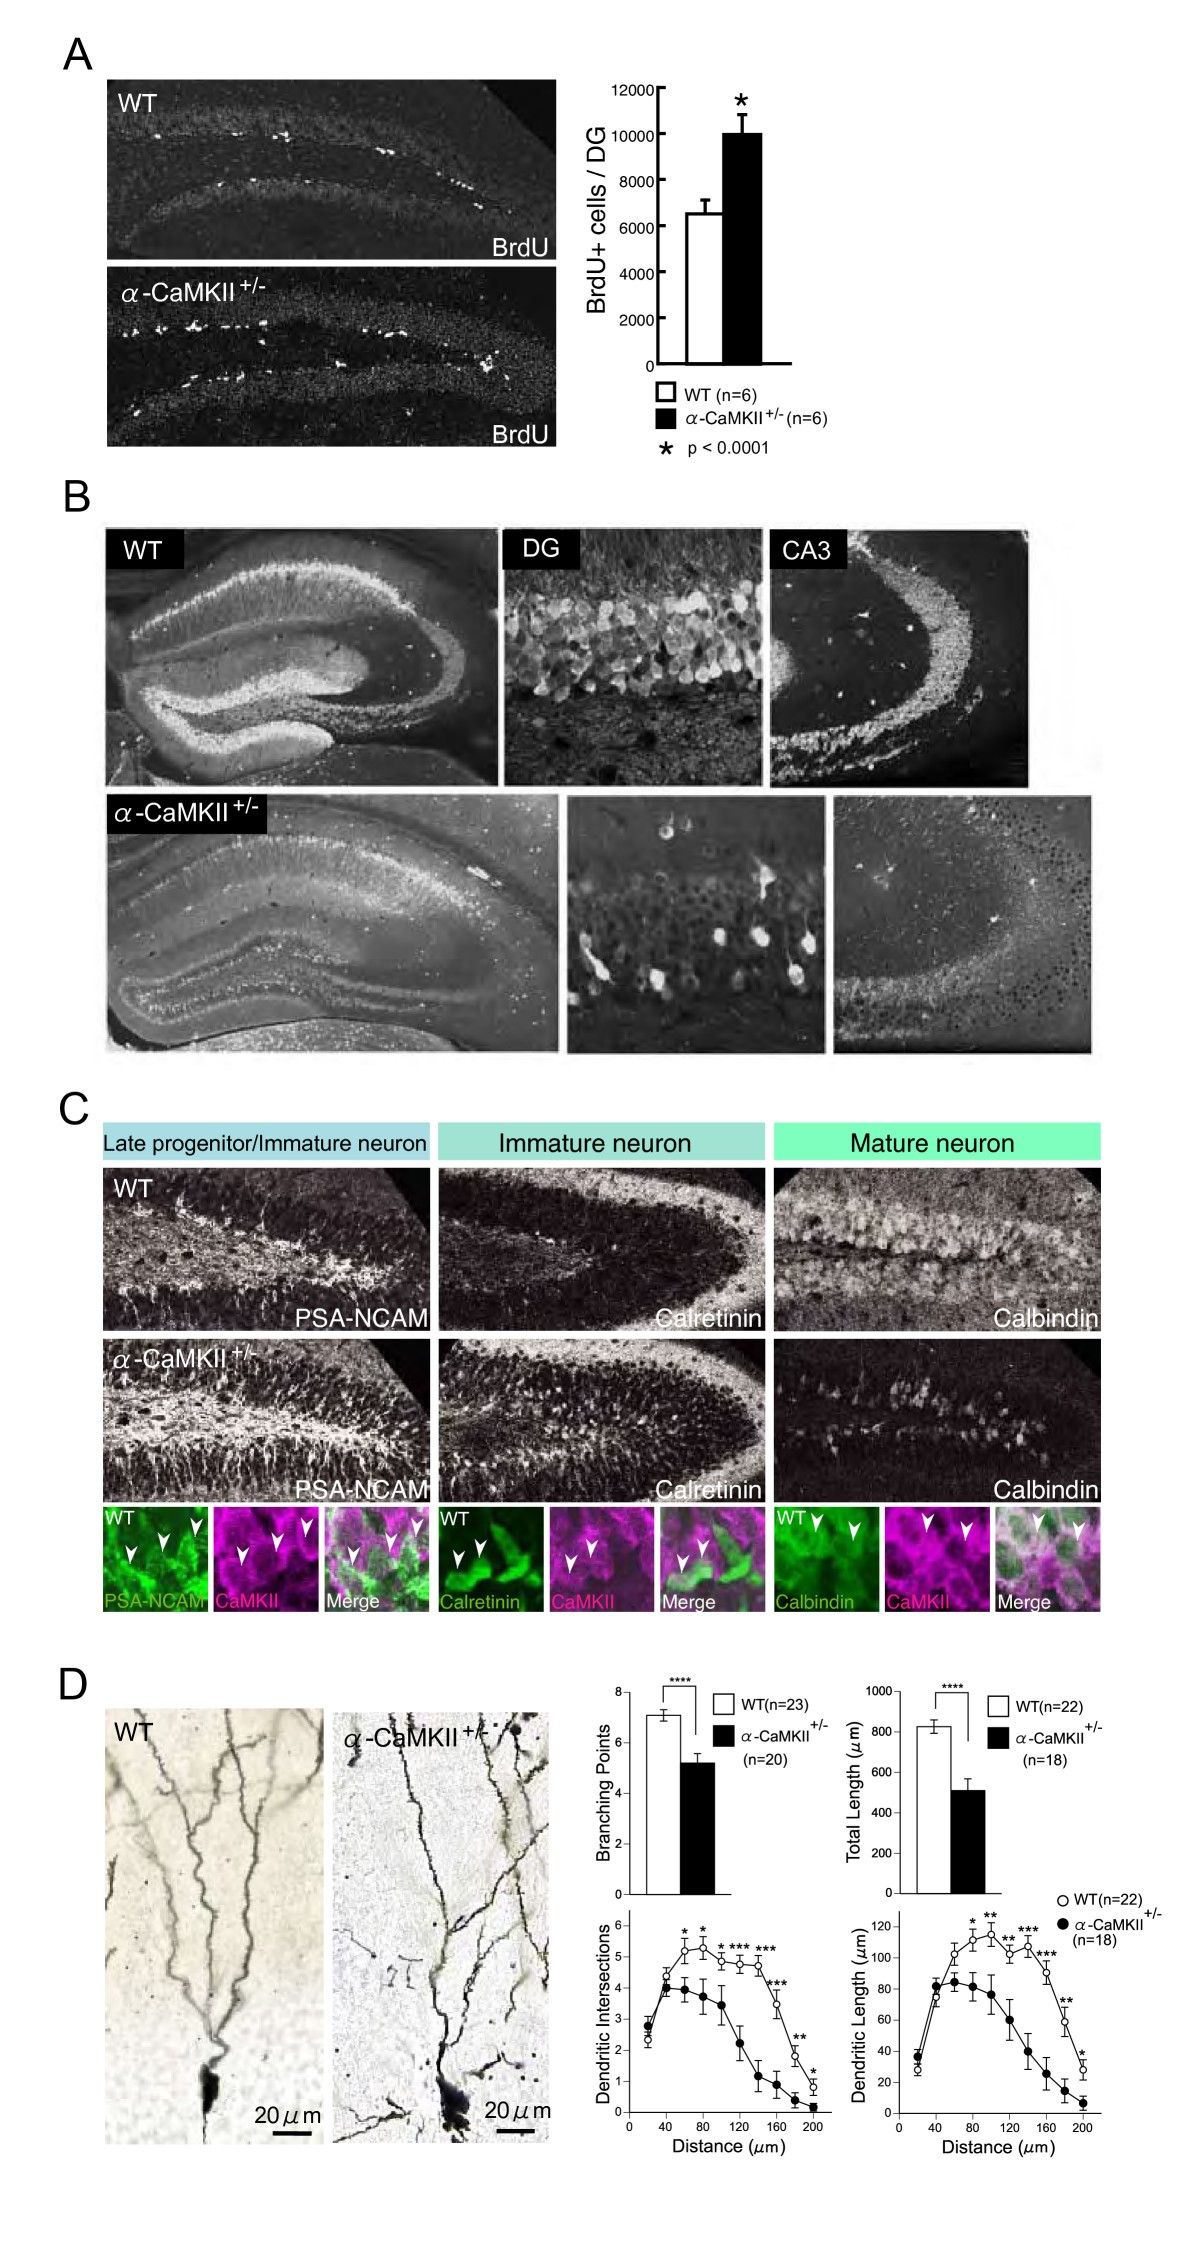 Alpha Camkii Deficiency Causes Immature Dentate Gyrus A Novel 1994 S10 Marker Light Wiring Diagram Figure 3